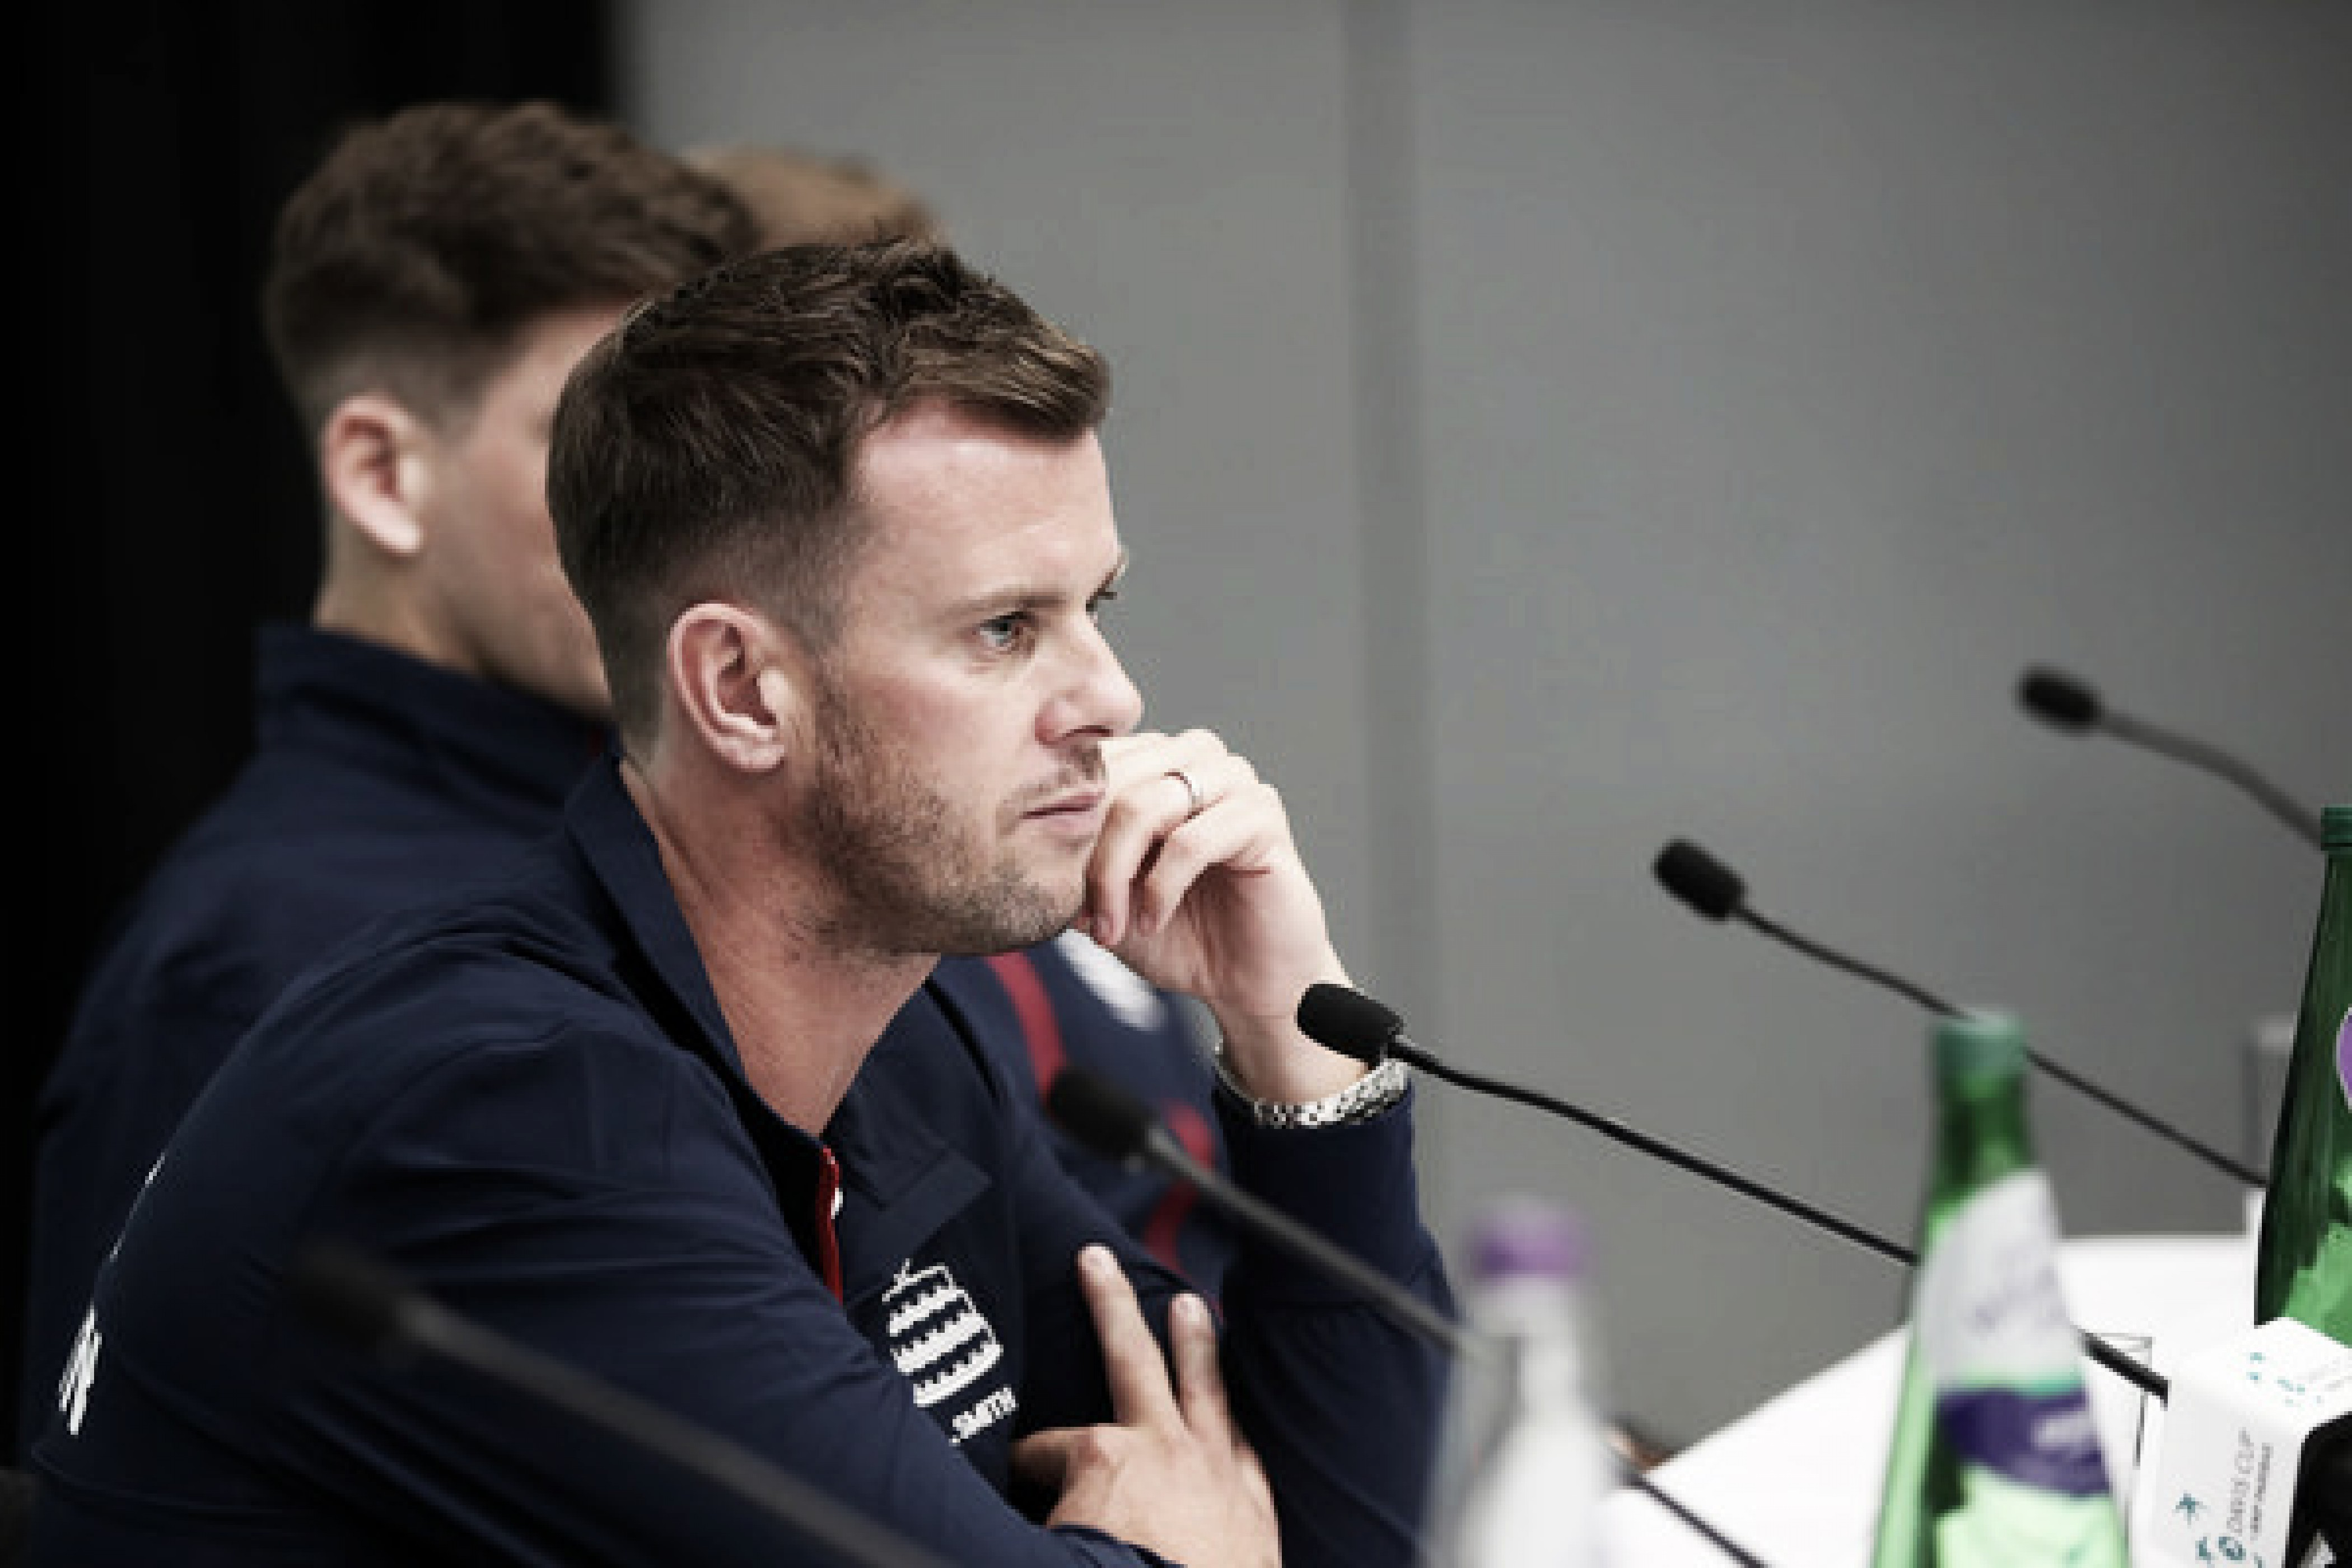 Great Britain's Davis Cup captain Leon Smith urges tournaments to give more clarity to players over coaching rule